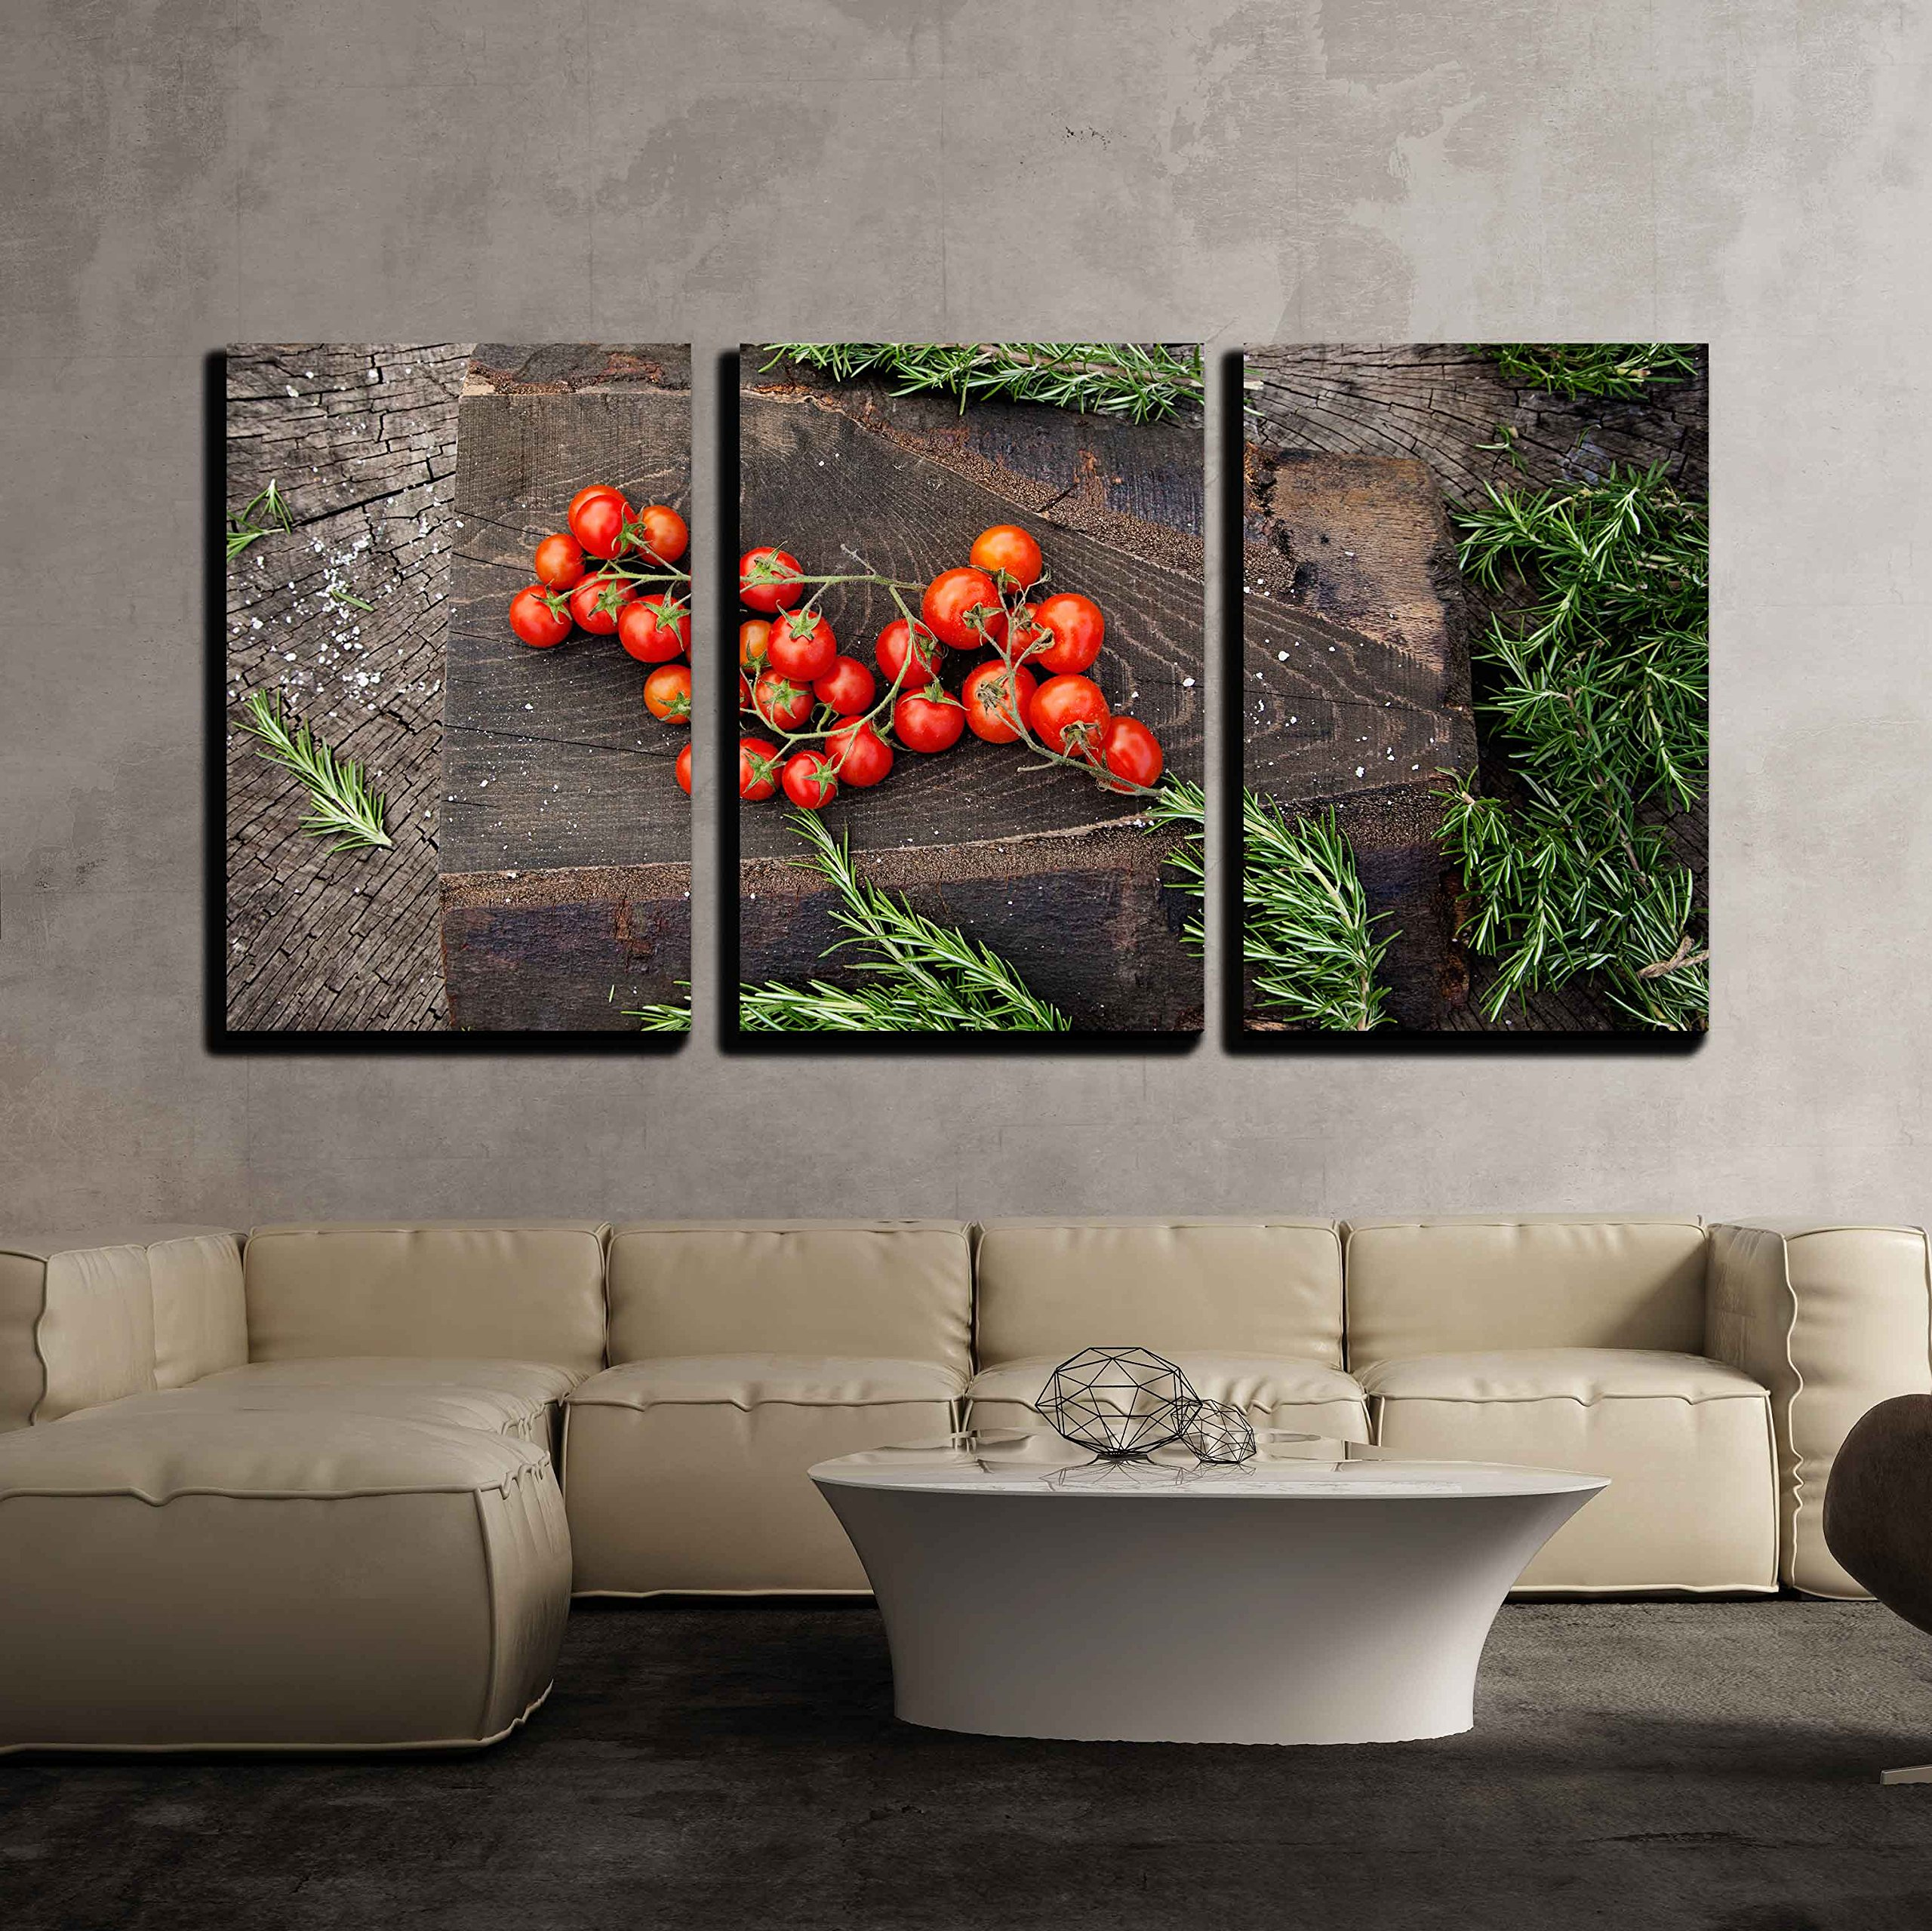 """wall26 - 3 Piece Canvas Wall Art - Fresh Vegetables. Cherry Tomatoes with Rosemary on Wood in Vegetable Garden - Modern Home Decor Stretched and Framed Ready to Hang - 16""""x24""""x3 Panels"""